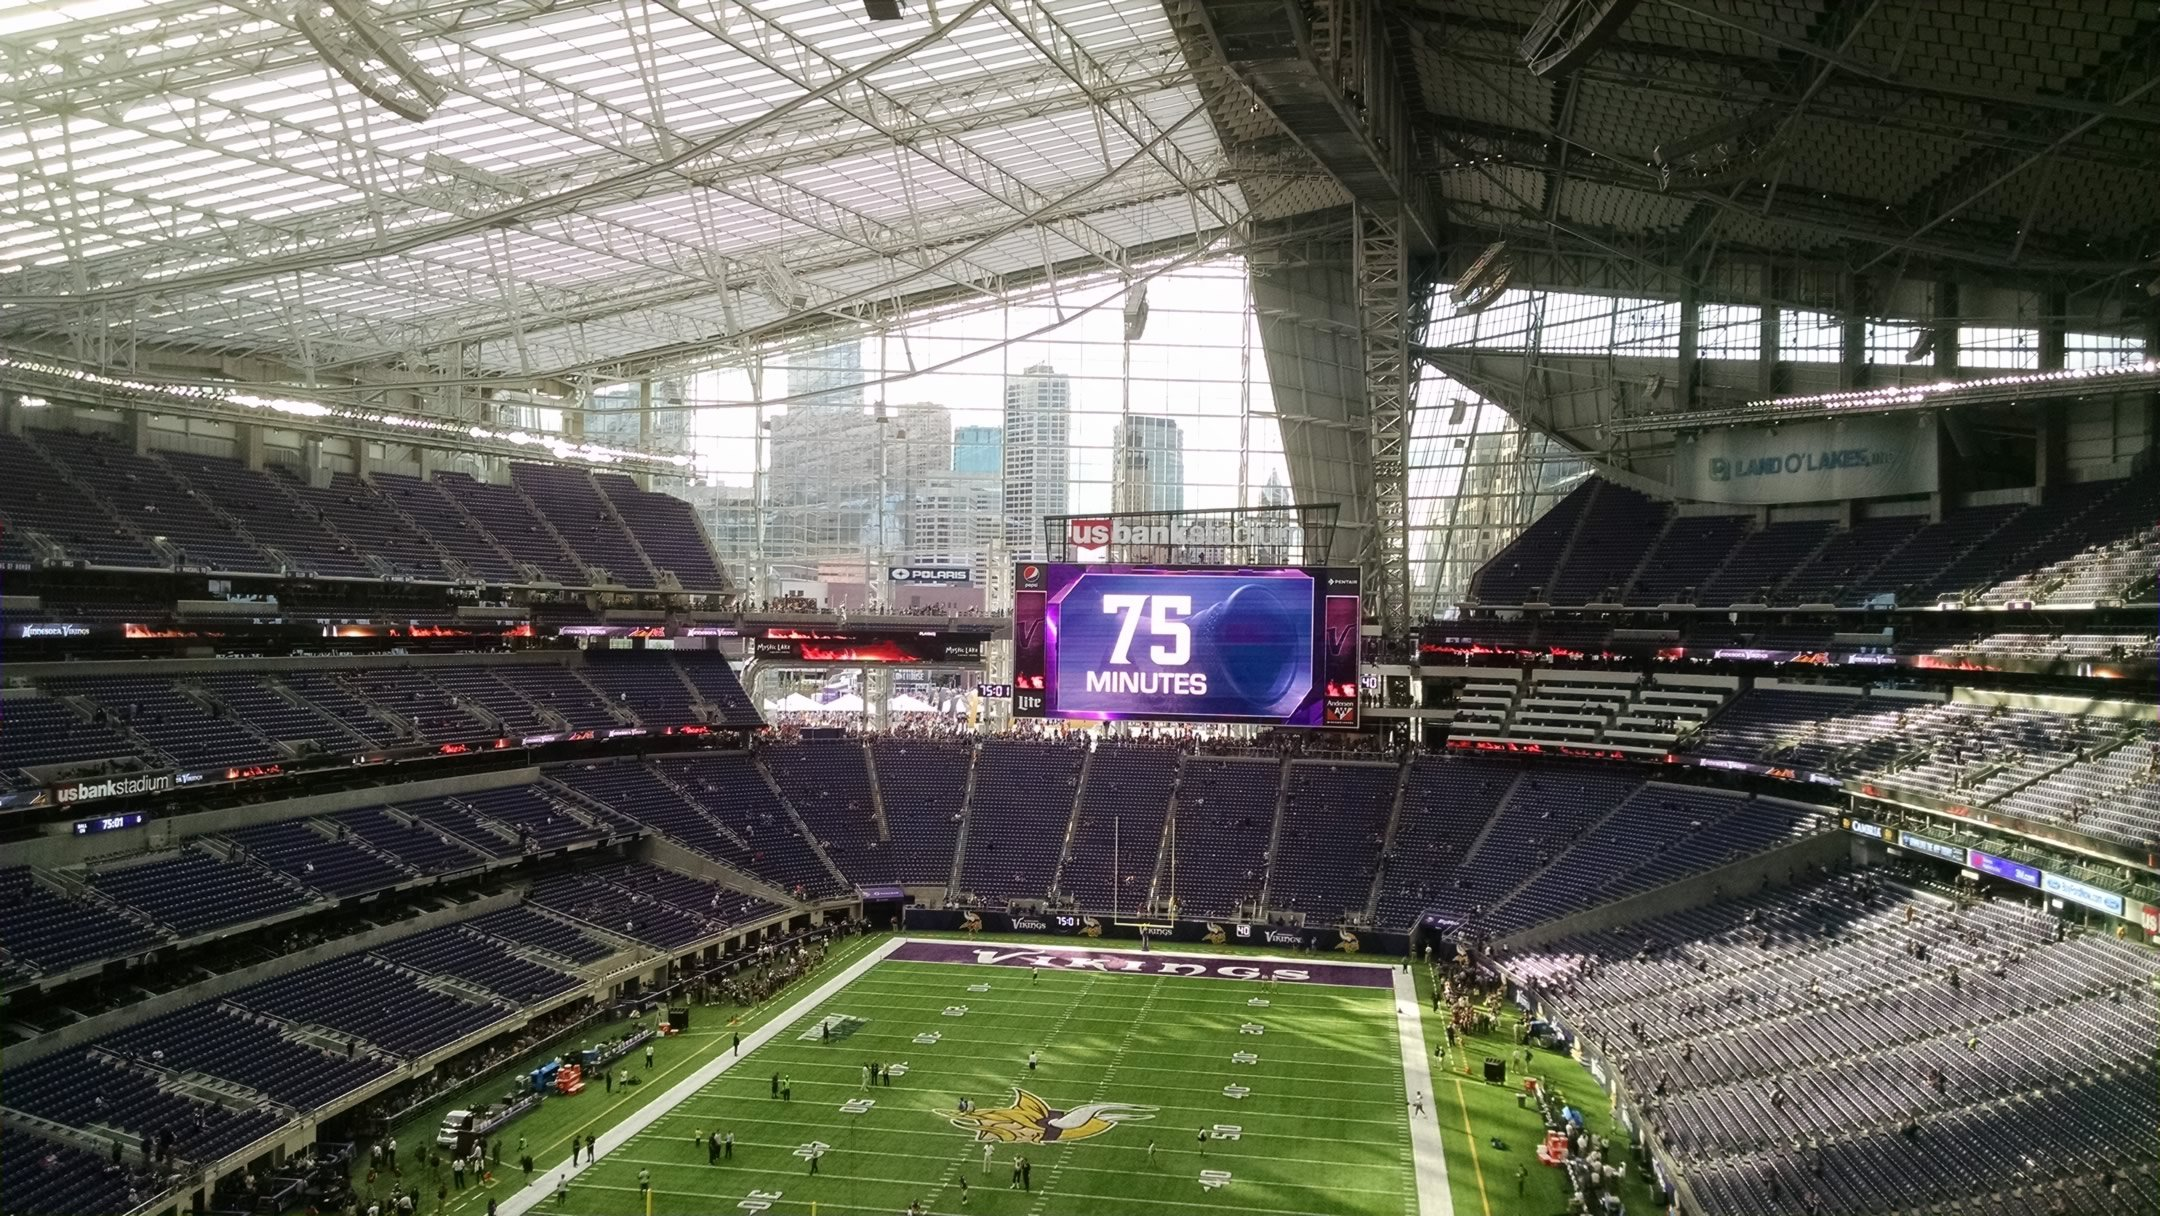 The Stadium S Main Videoboard Sits Above Sections 140 143 And Frames Views Of Downtown Minneapolis